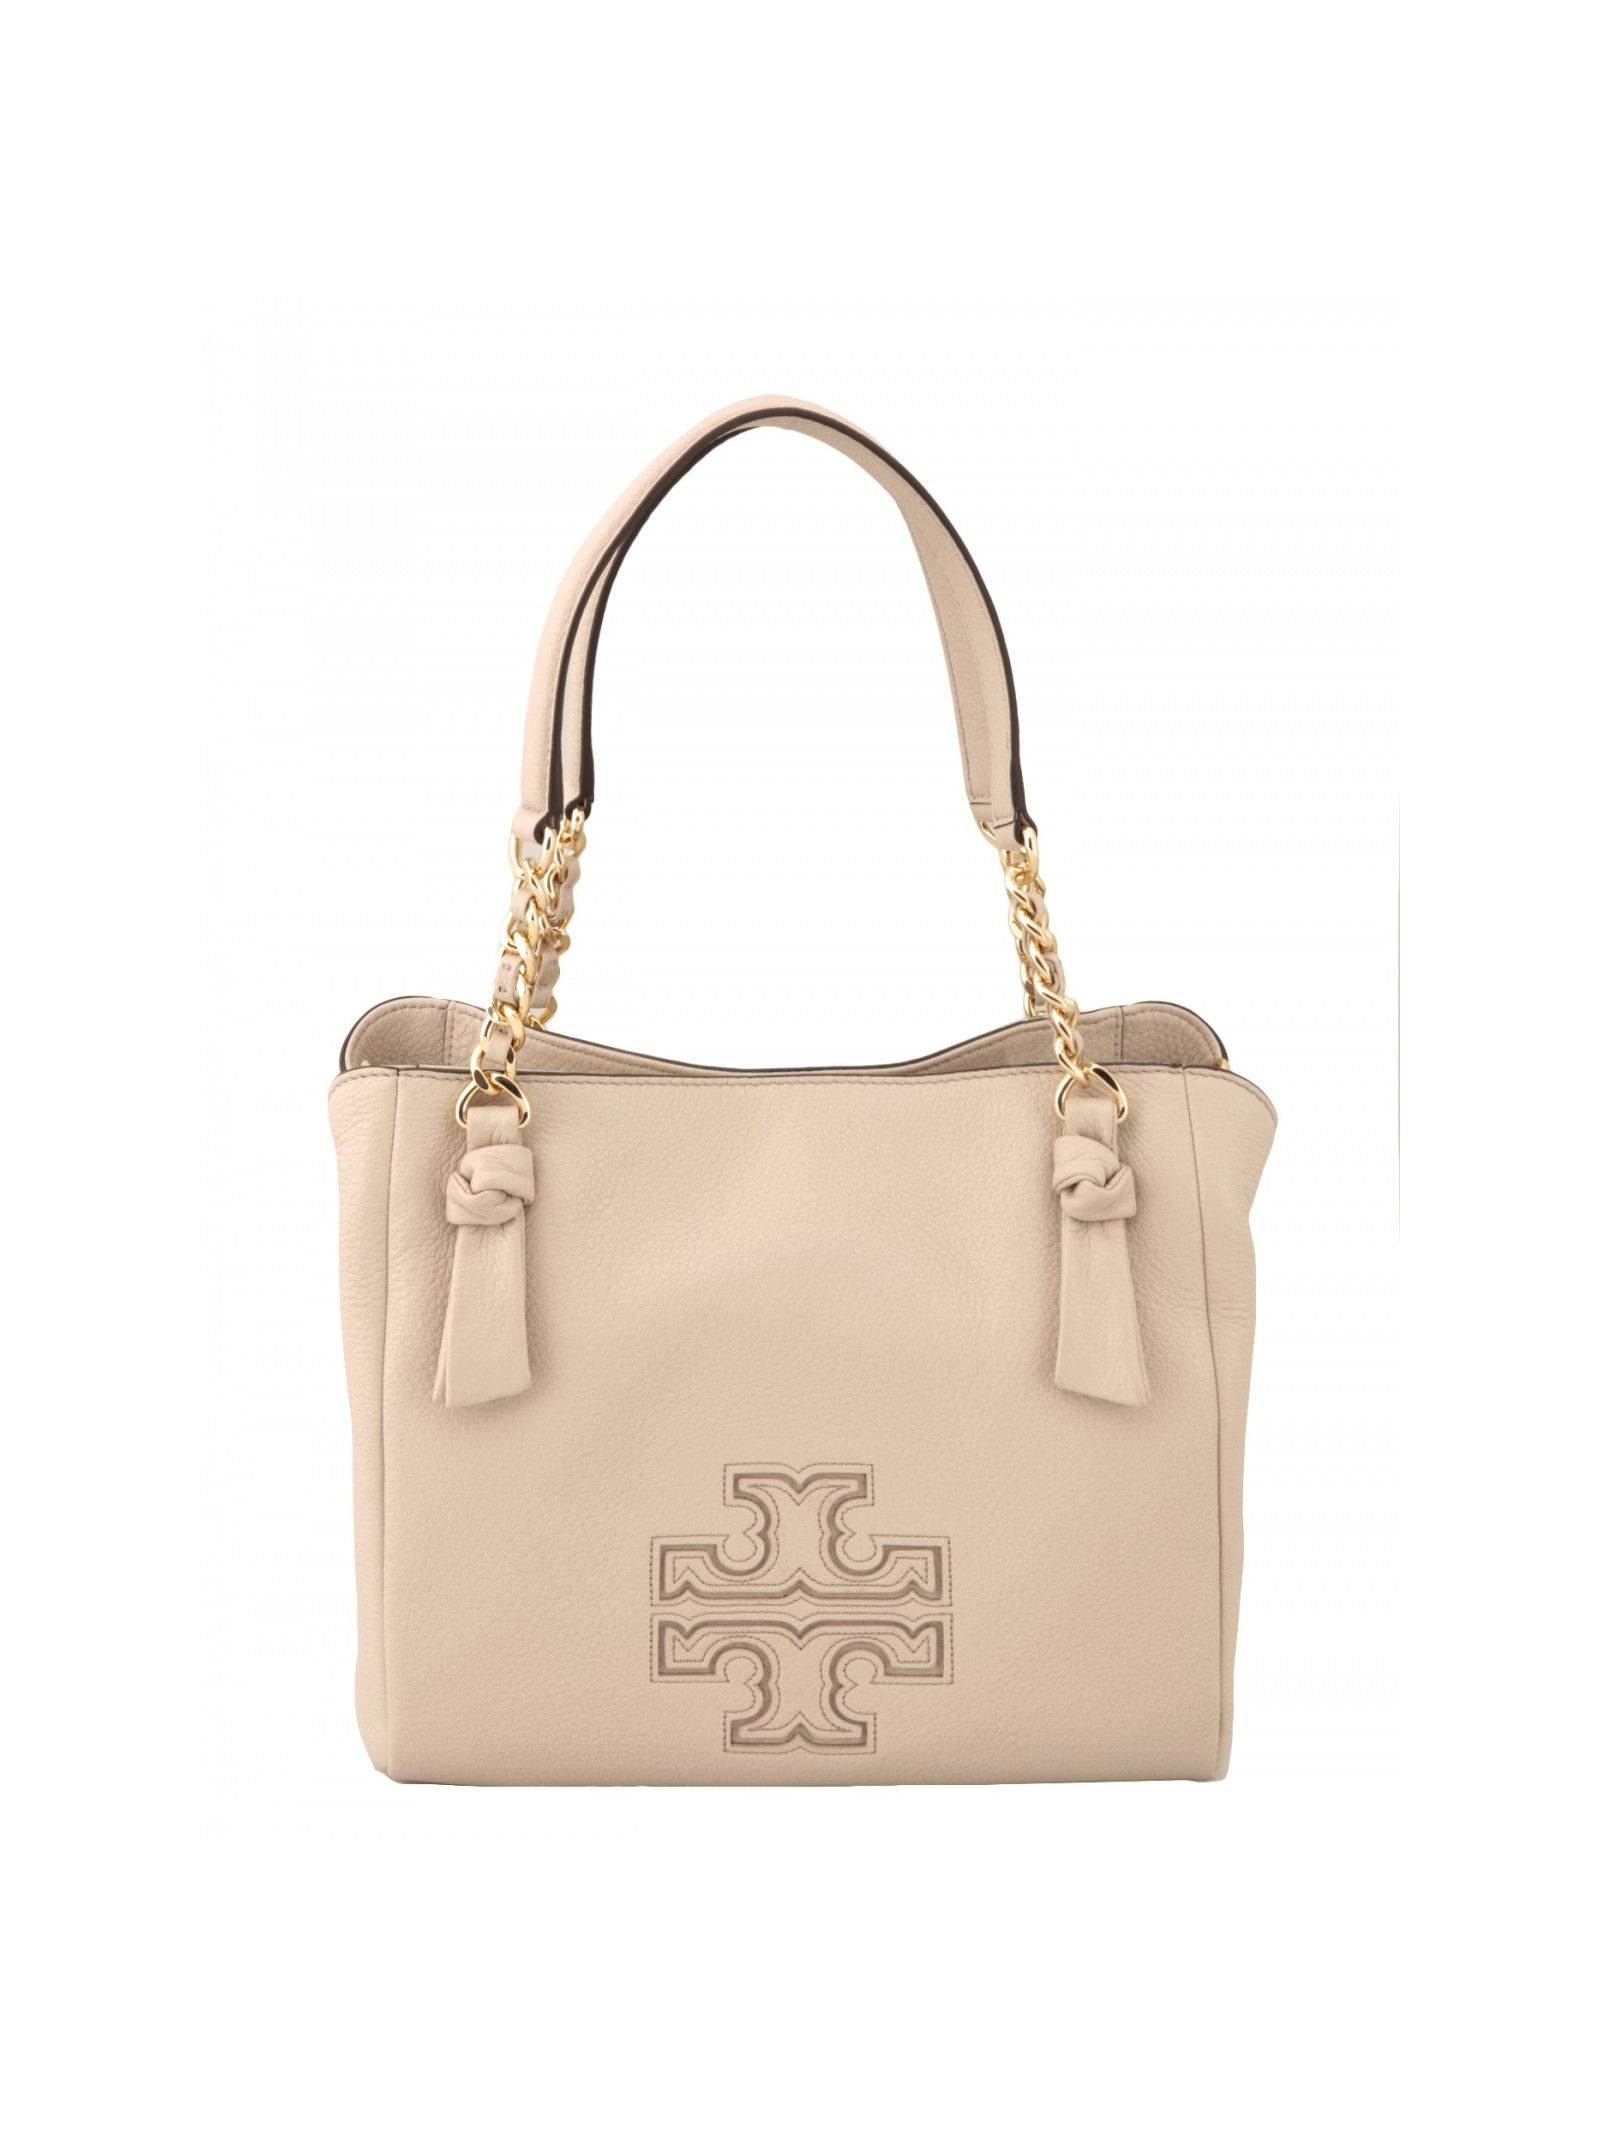 tory burch female tory burch pebbled leather bag